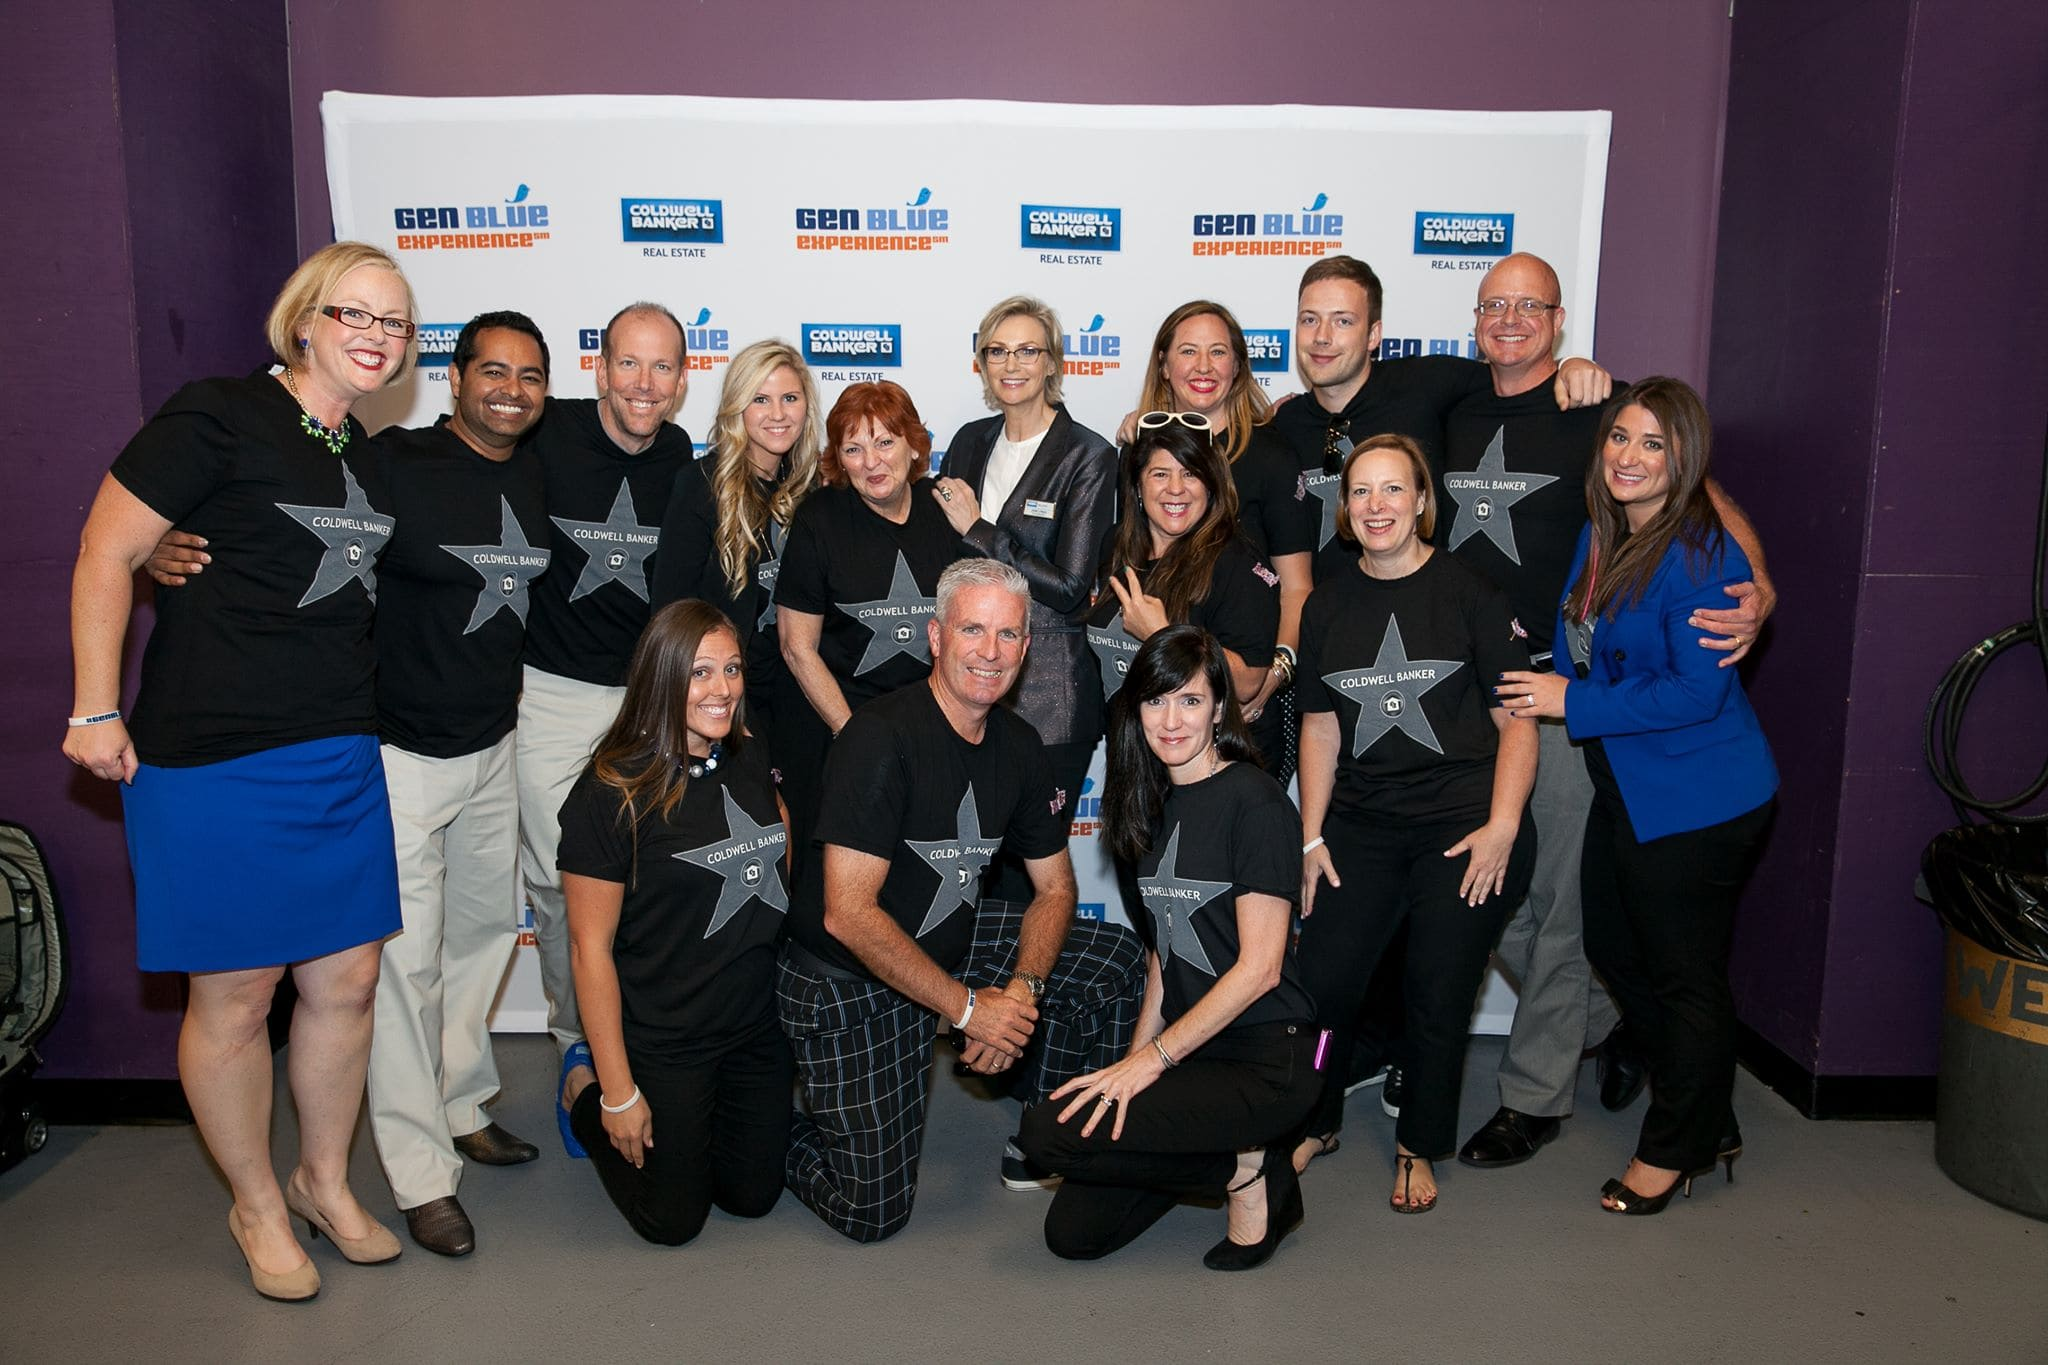 GenBlue Social Squad with Jane Lynch